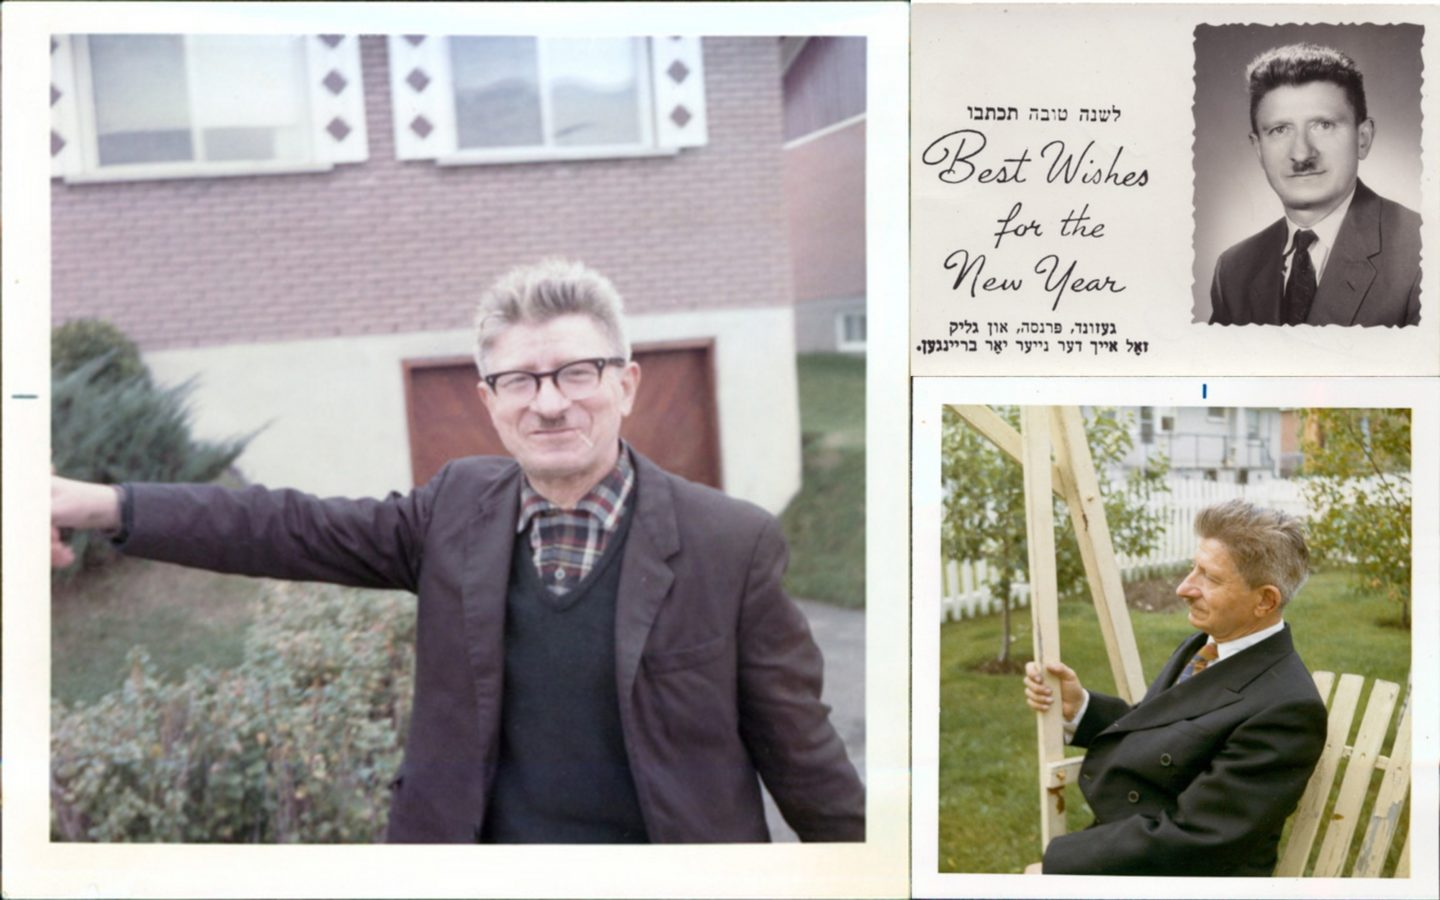 <p>Photos of Motl Siemiatycki courtesy of his son, Jack Siemiatycki.</p>